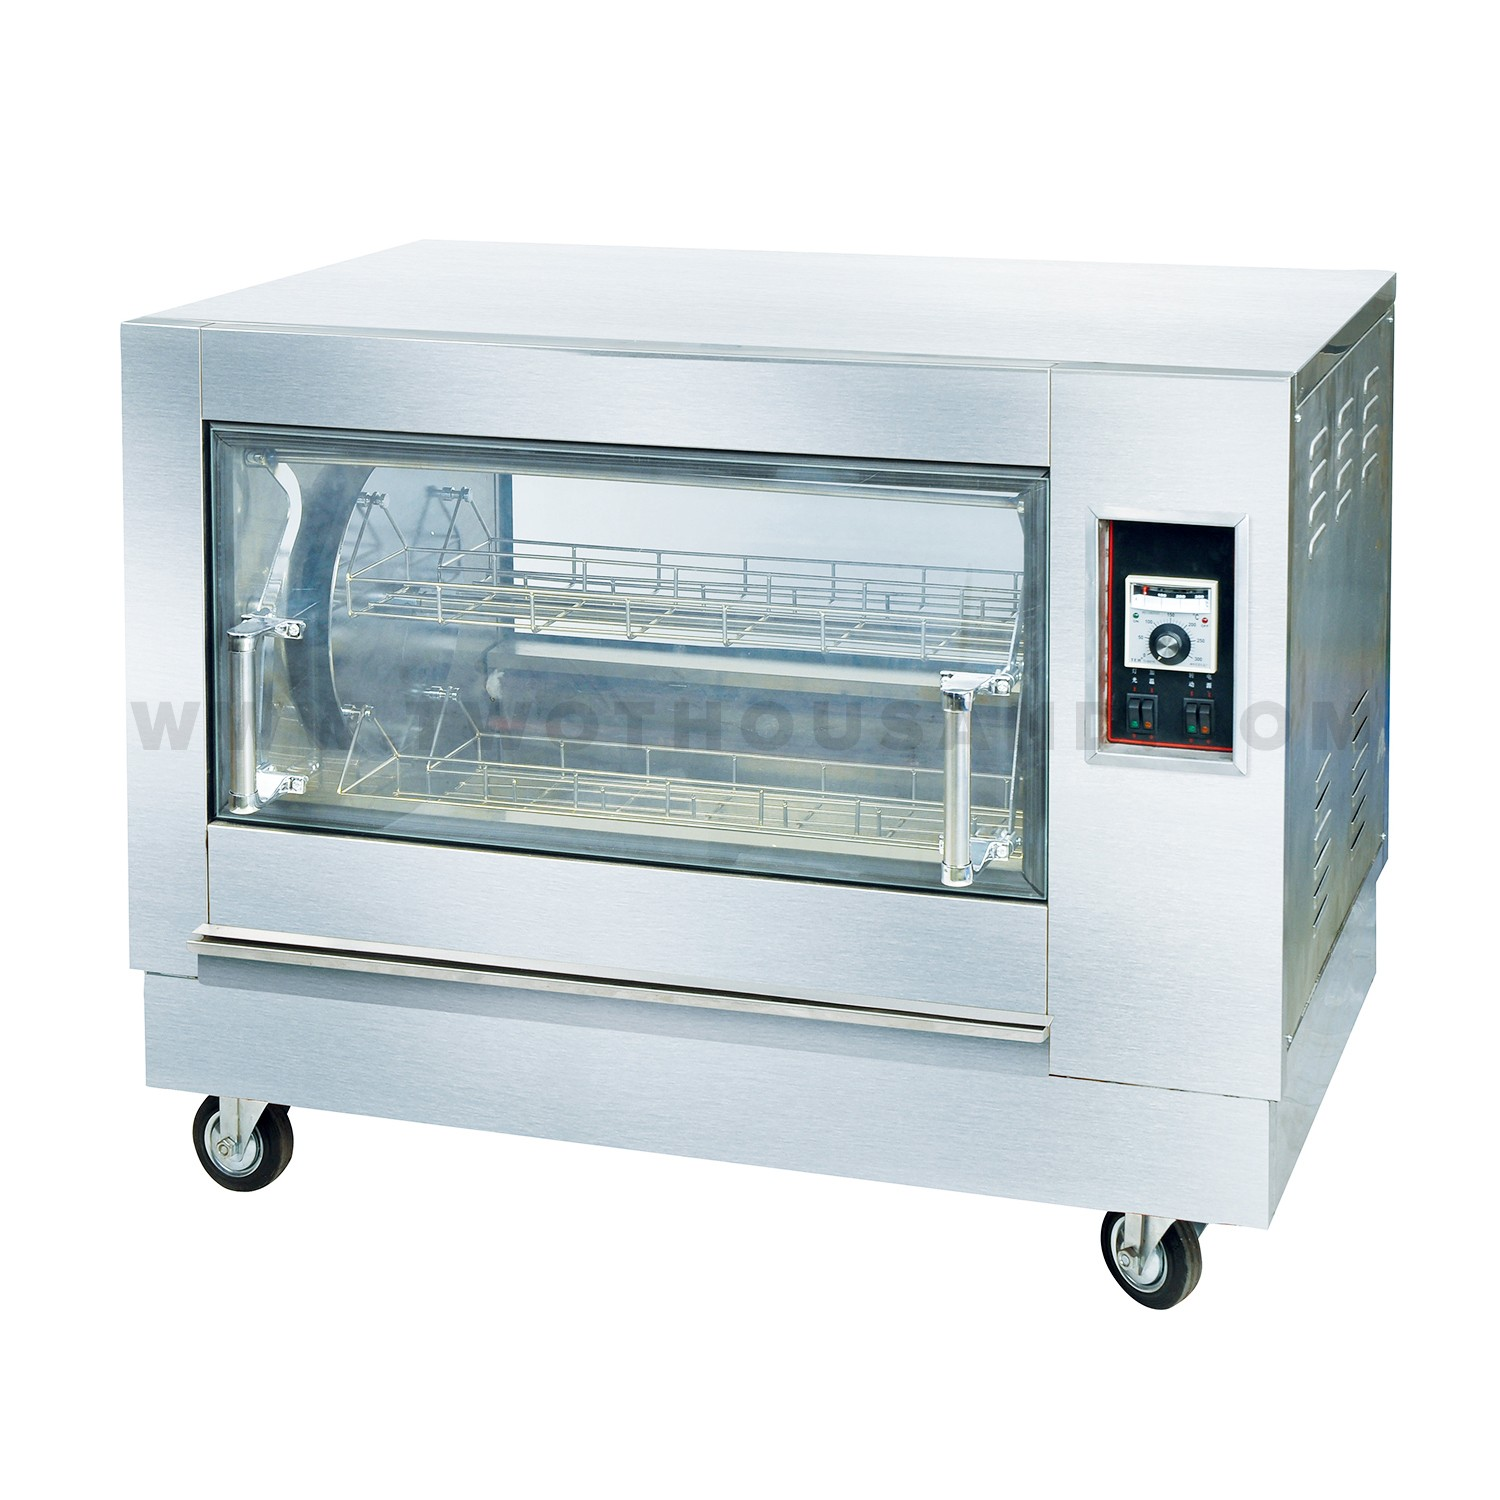 Countertop Rotisserie Ovens L 1030mm Countertop Electric Rotary Chicken Rotisserie